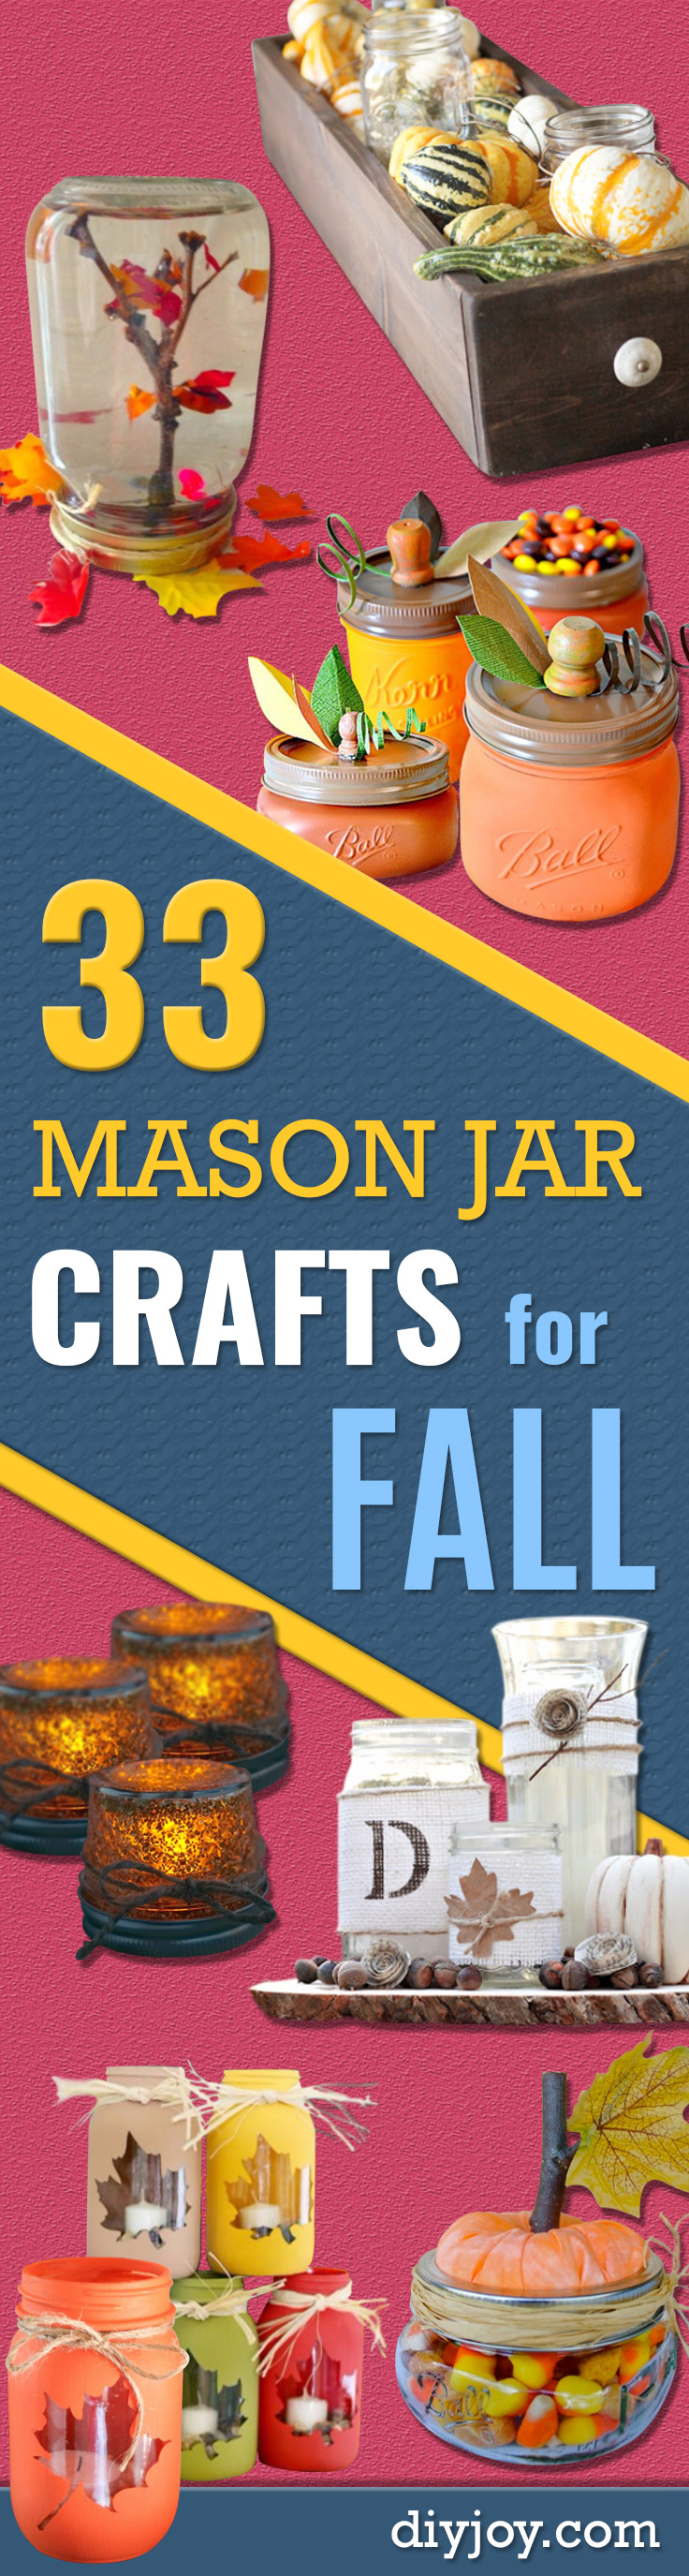 33 mason jar crafts for fall for Jar crafts for gifts